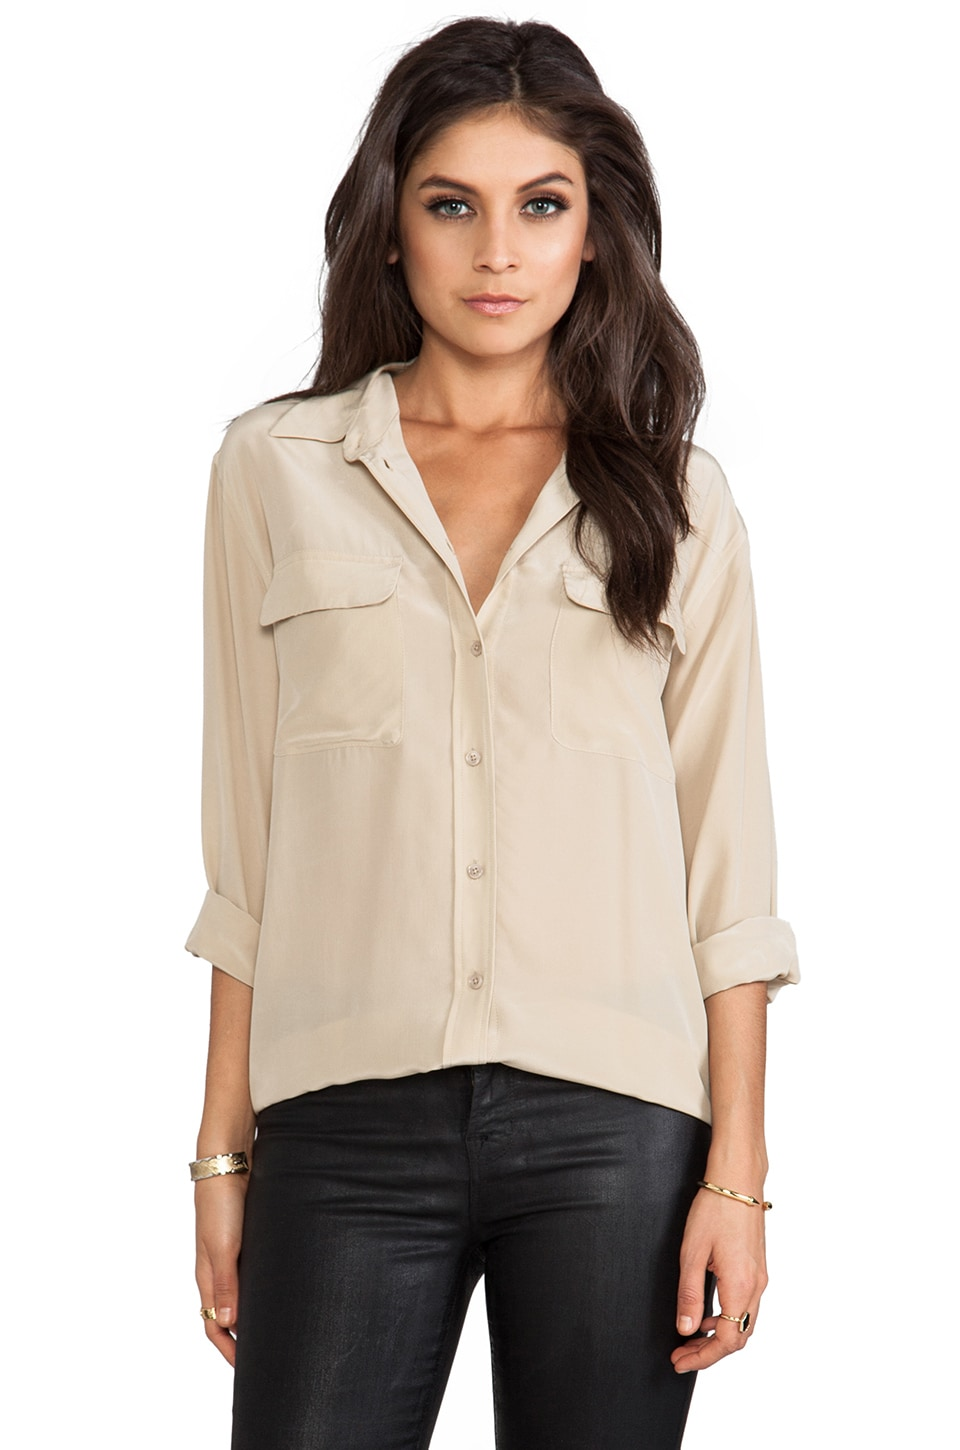 Equipment Signature Blouse in Dune